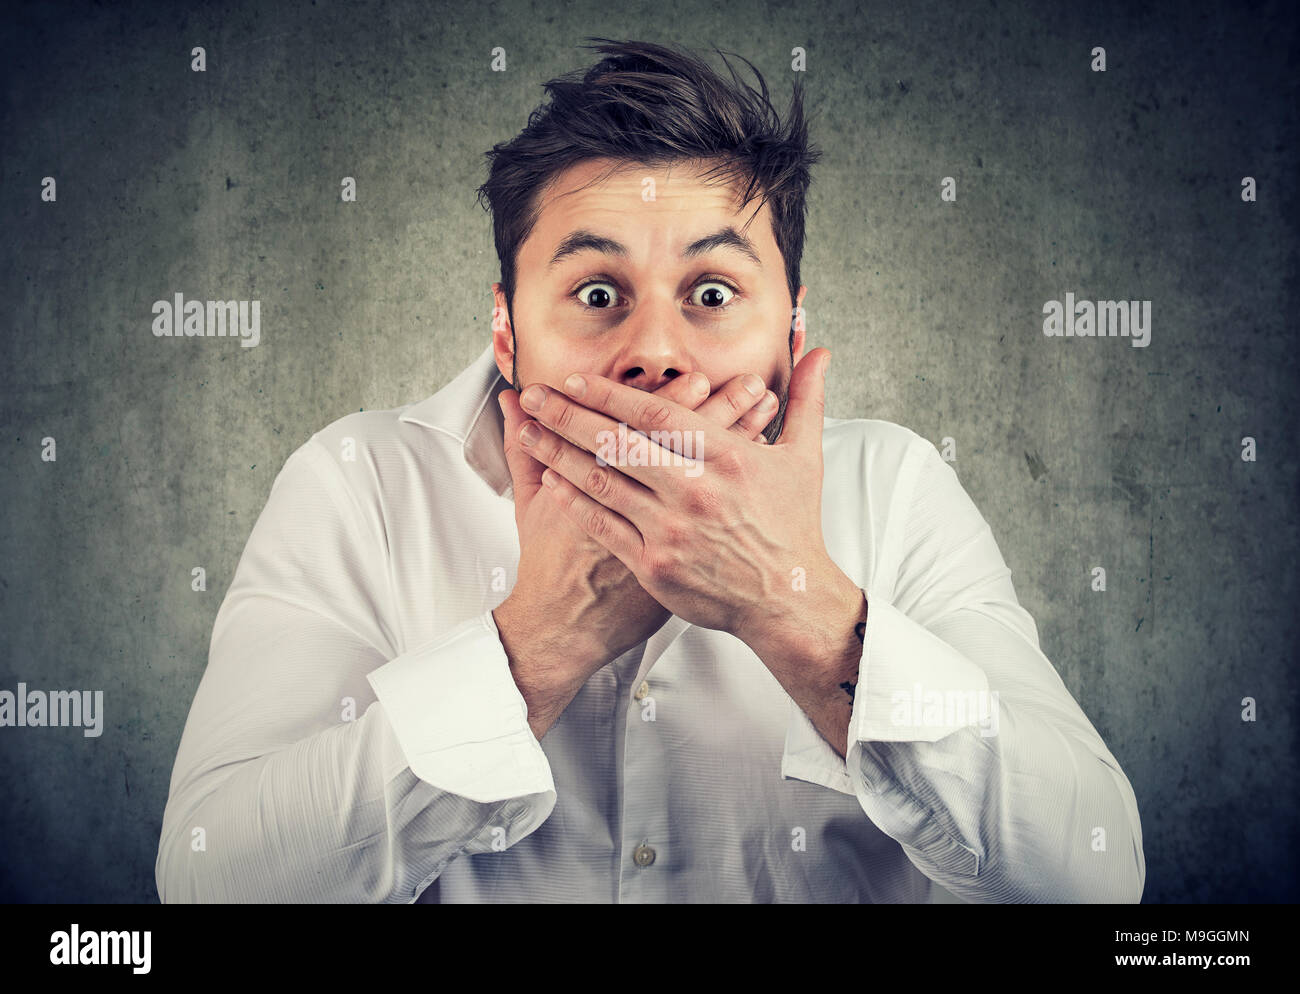 Young shocked man in white shirt covering mouth holding scream while looking at camera with amazed face expression. - Stock Image